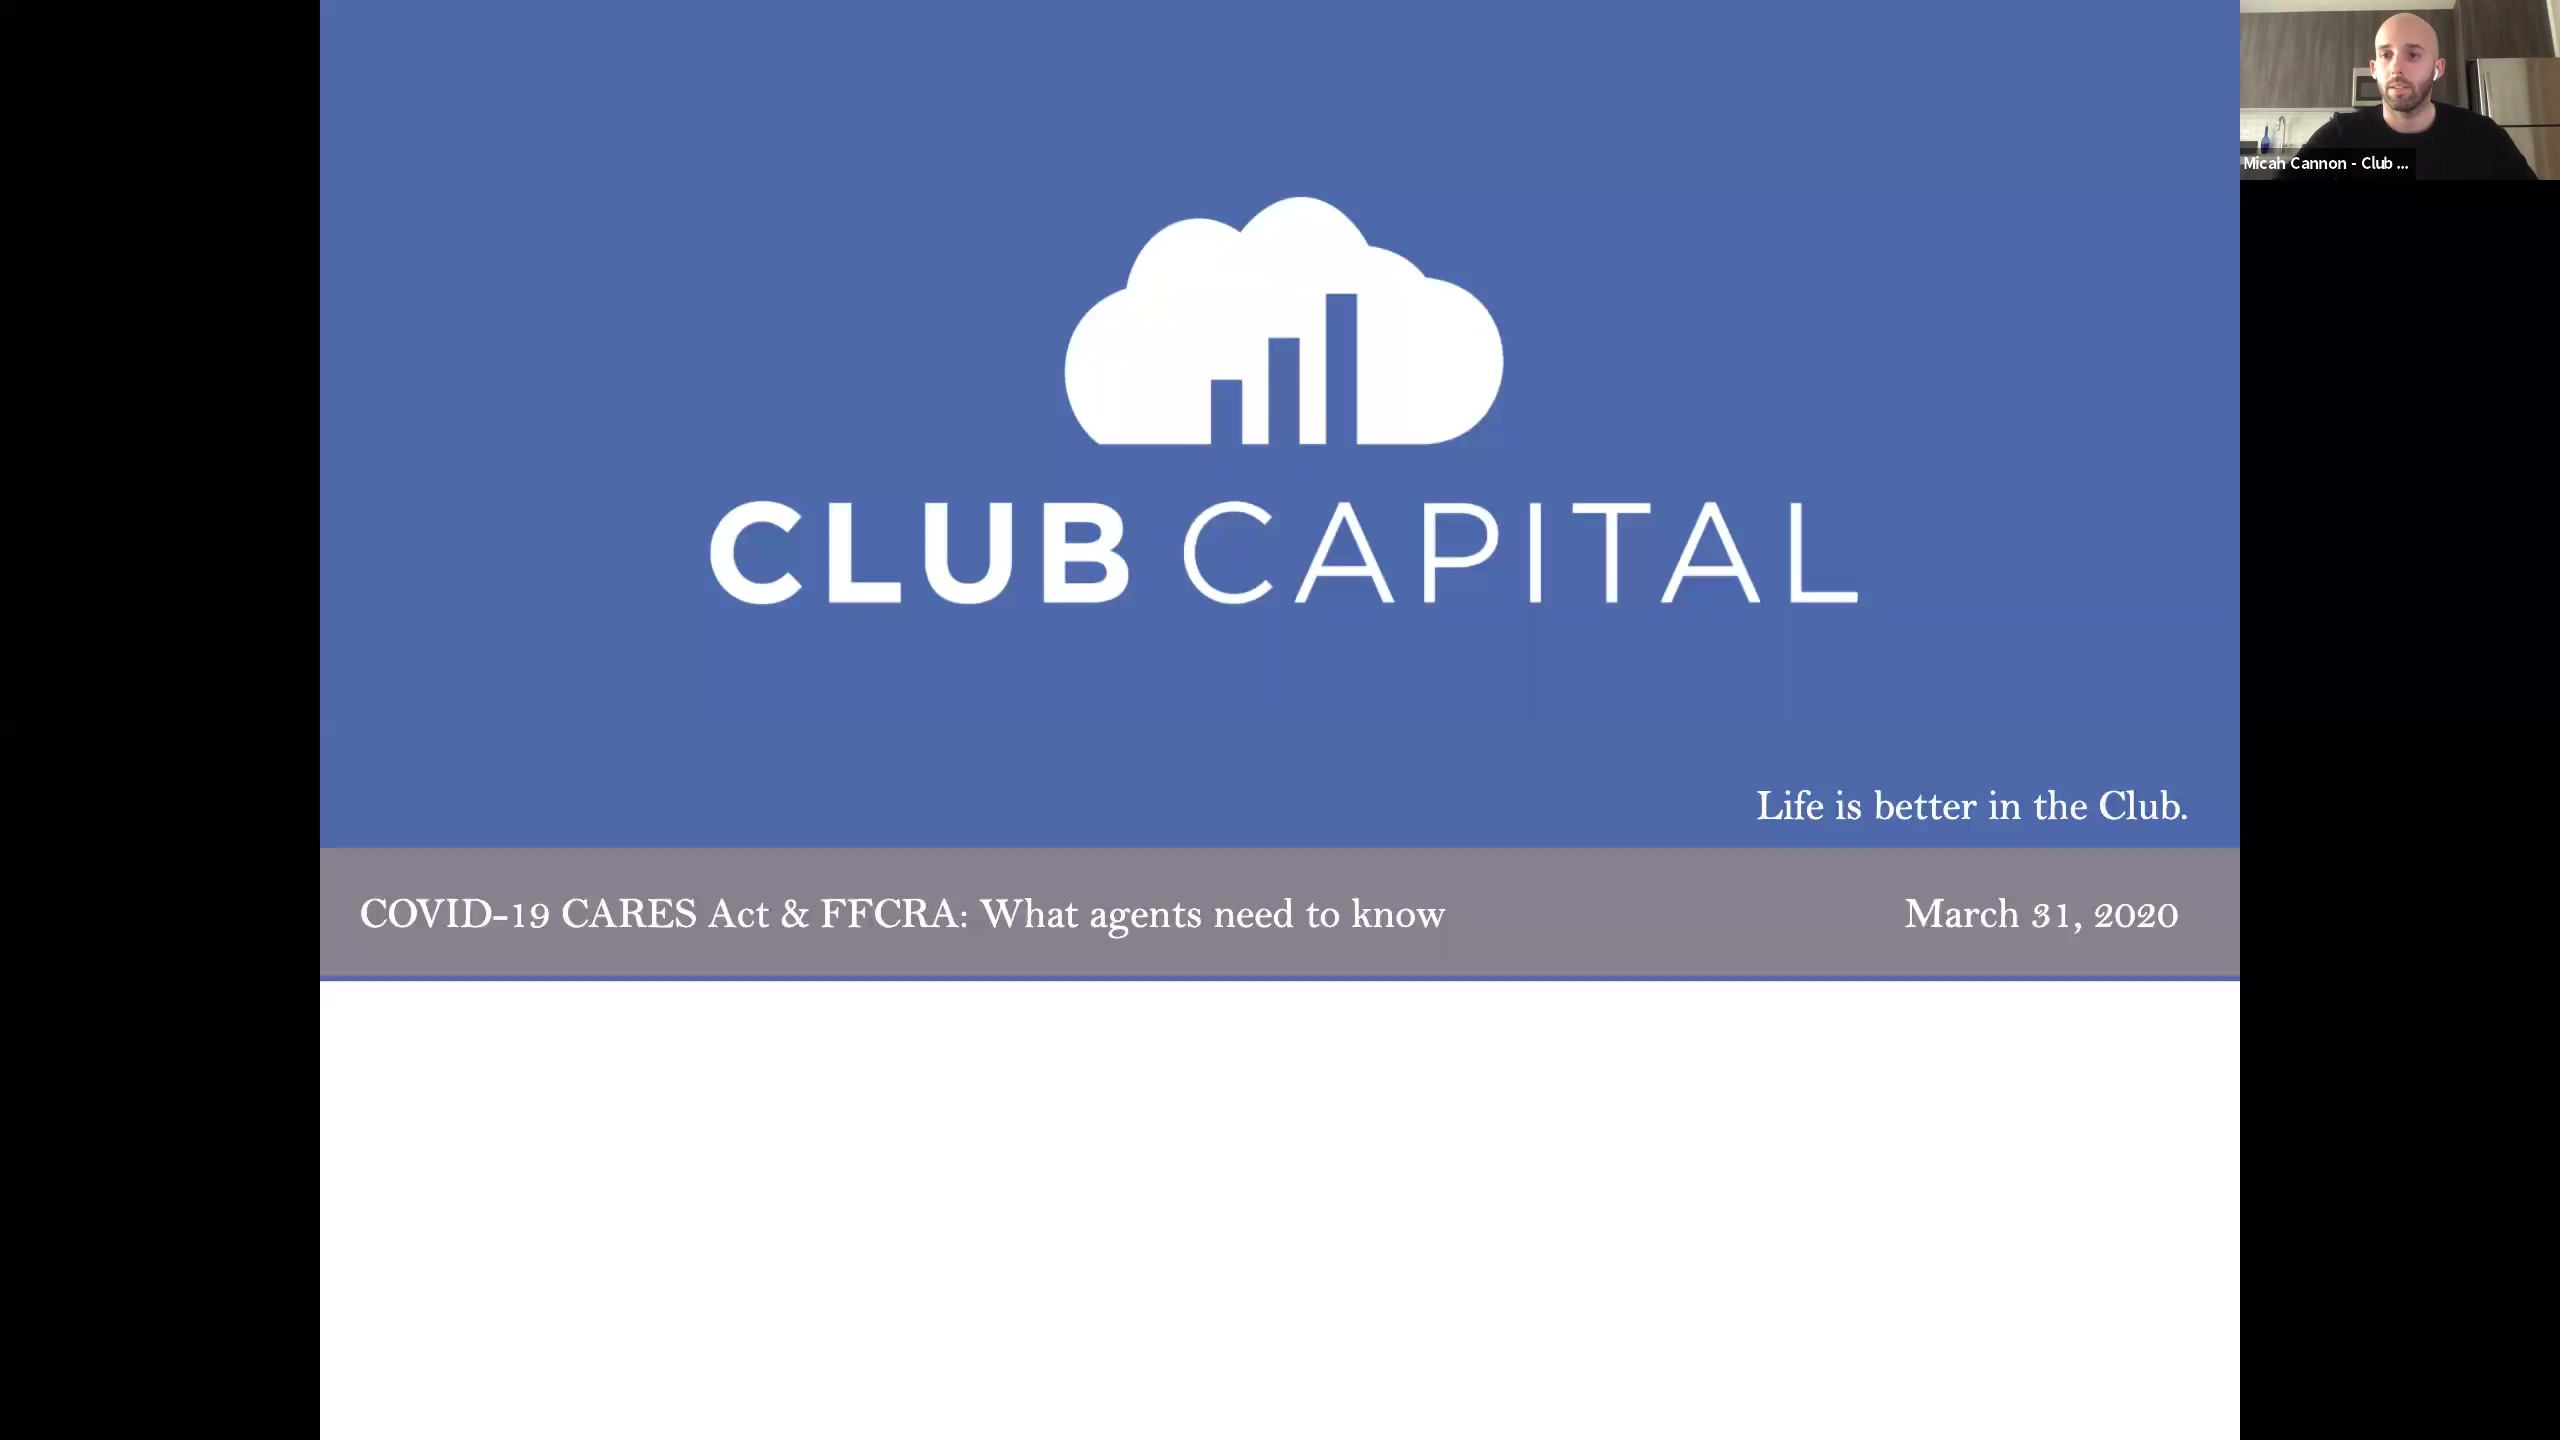 Club Capital_Webinar_COVID 19 FFCRA & CARES Act